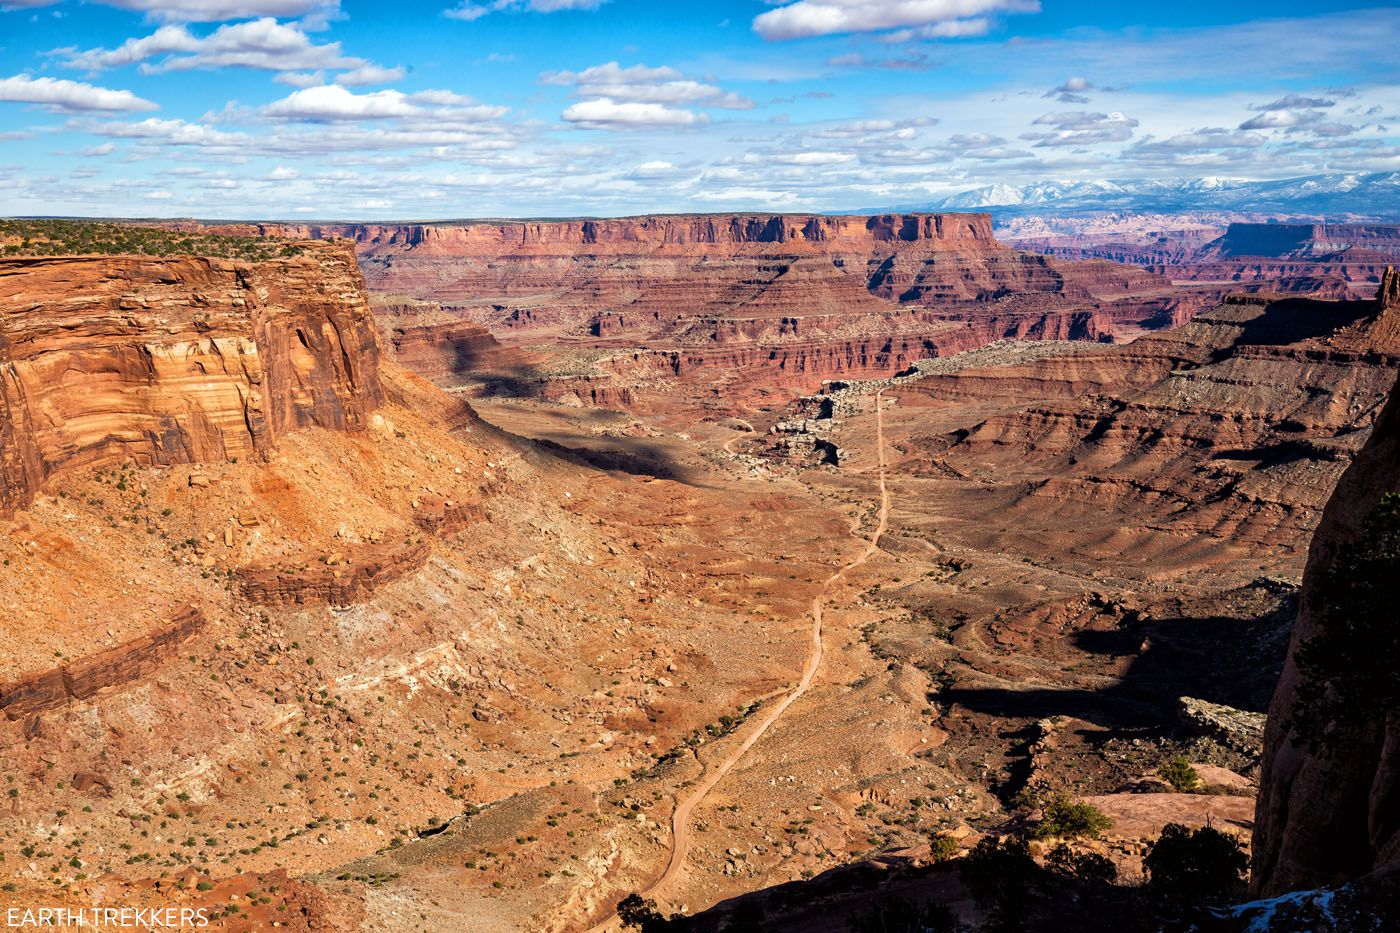 Things to do in Canyonlands